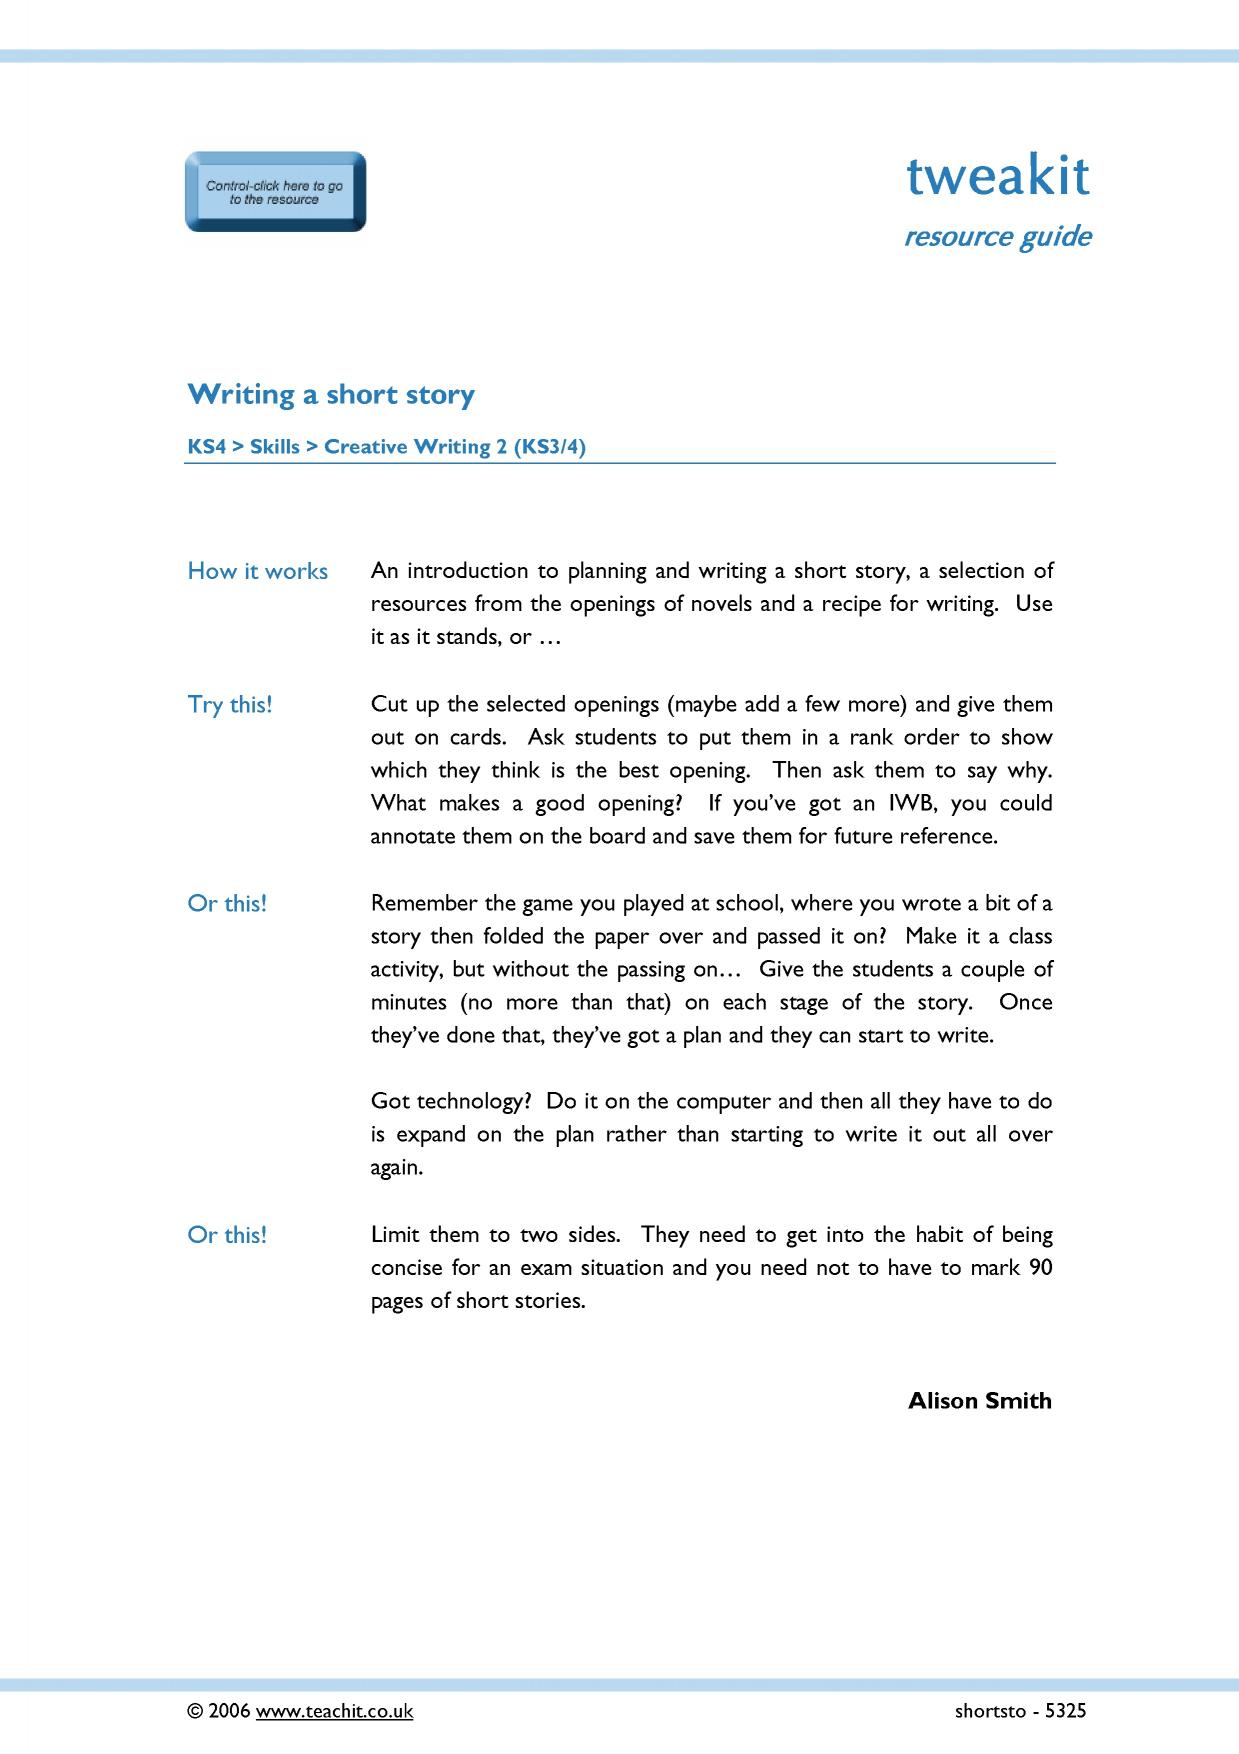 creative writing tasks ks4